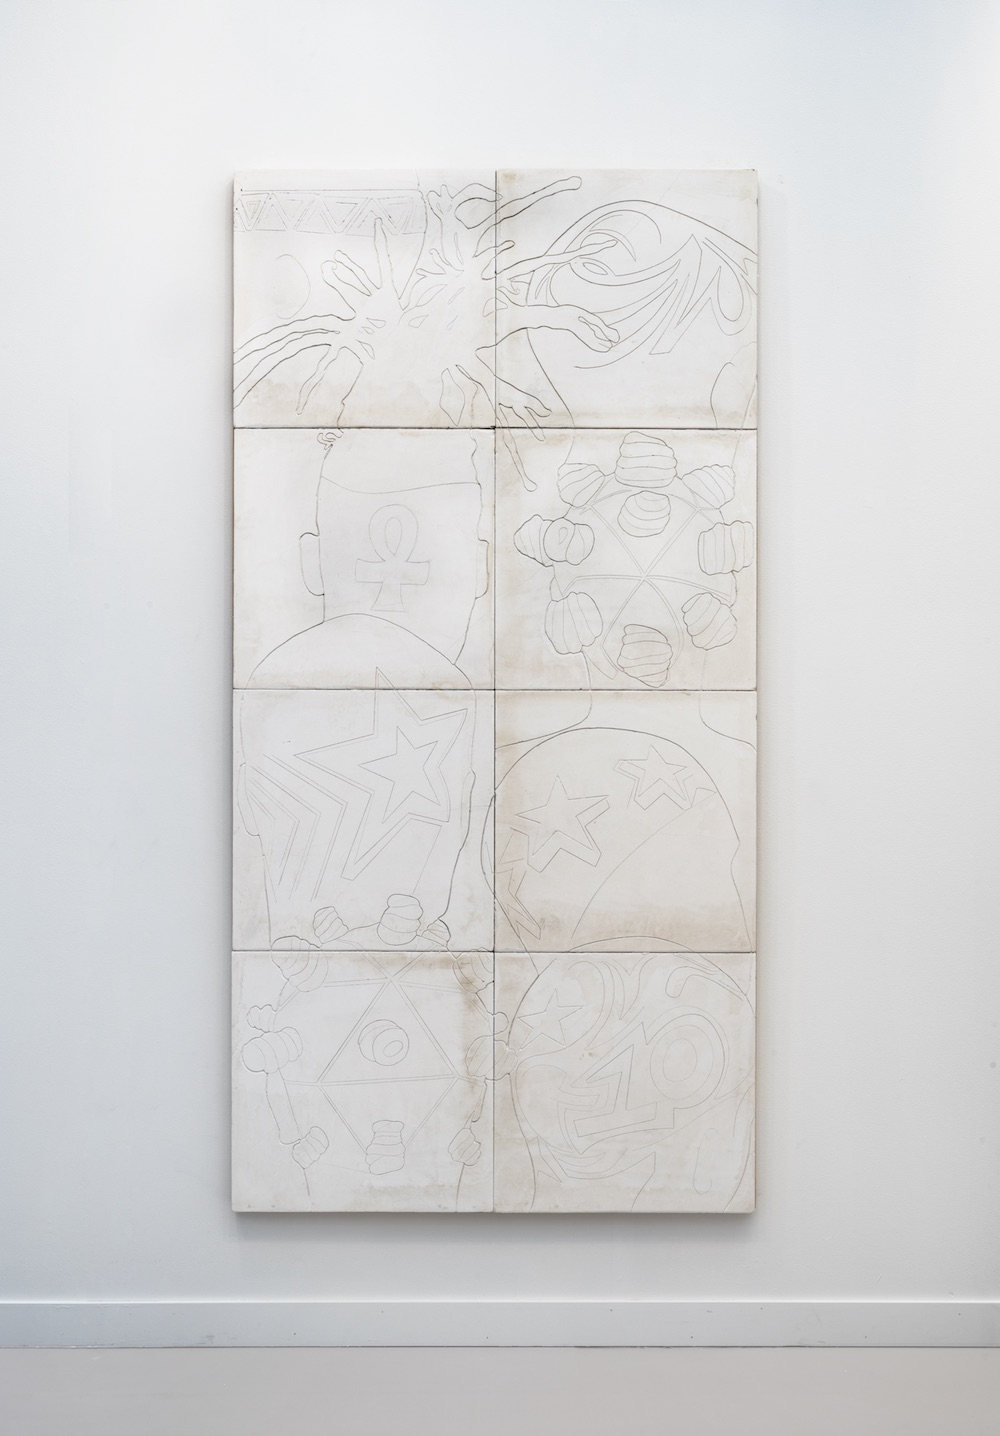 Lauren Halsey, Untitled, 2020 David Kordansky Gallery